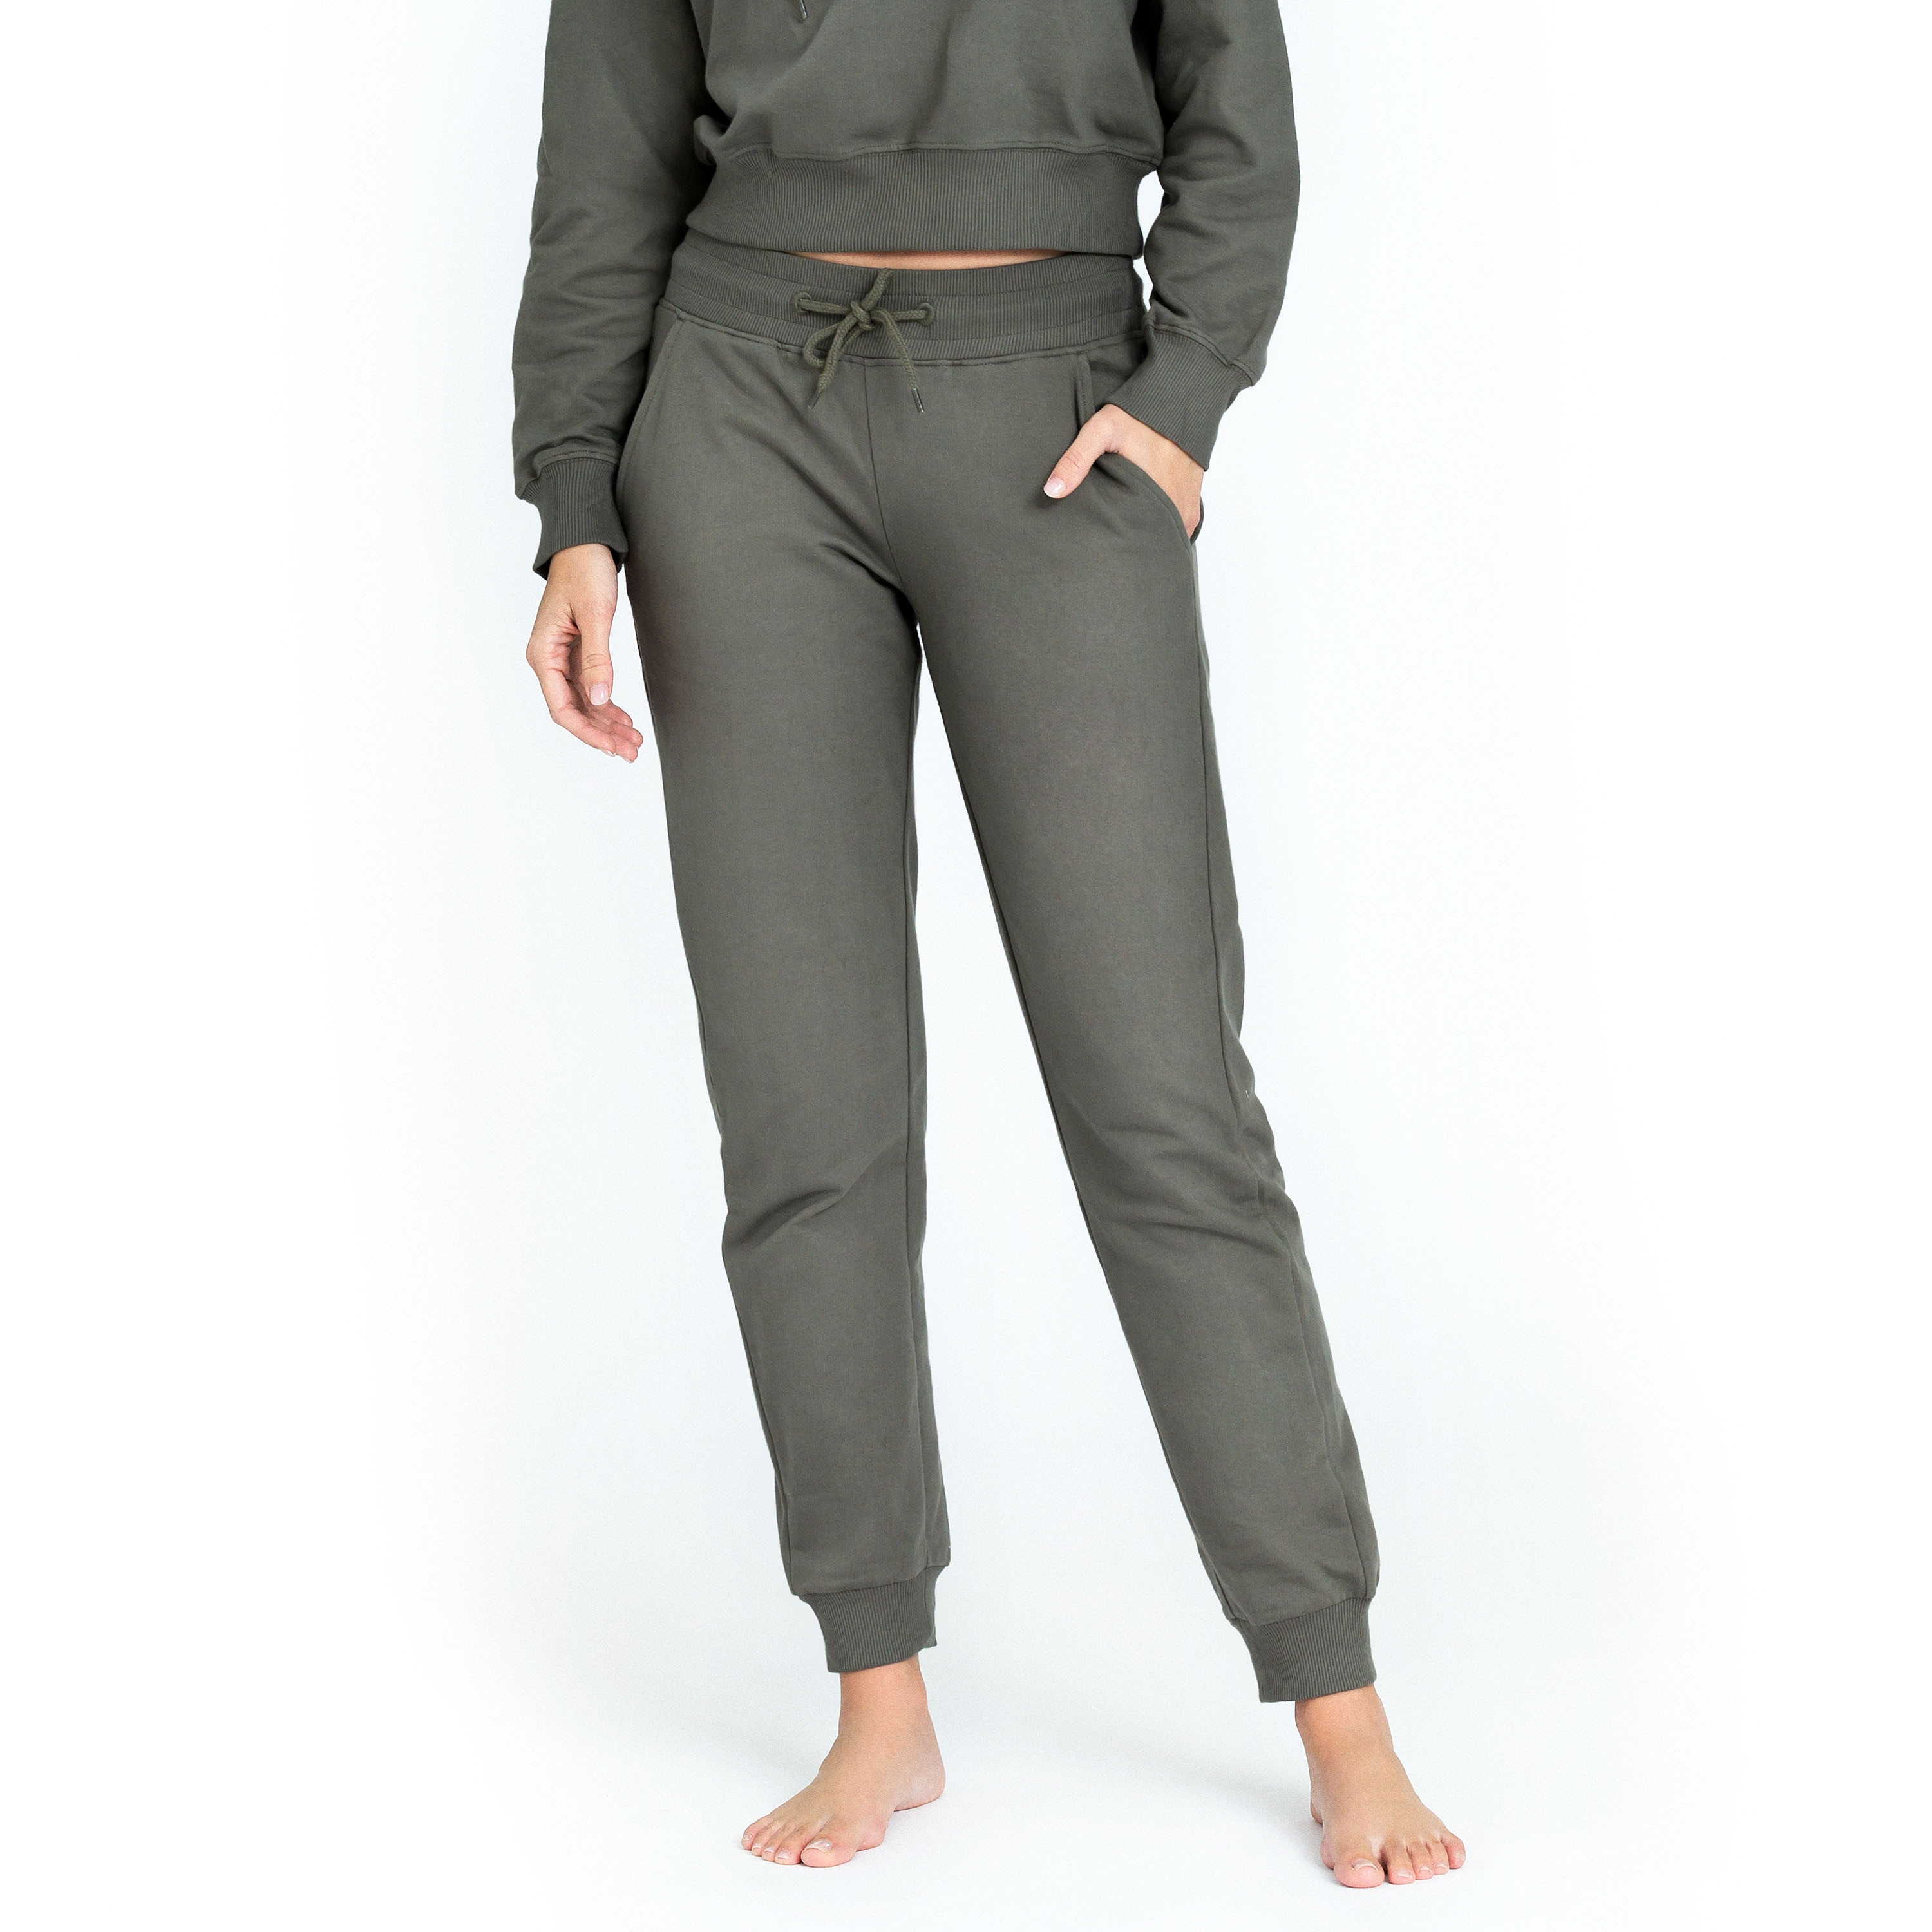 637-40_Lounge-Pant_olive-green_1